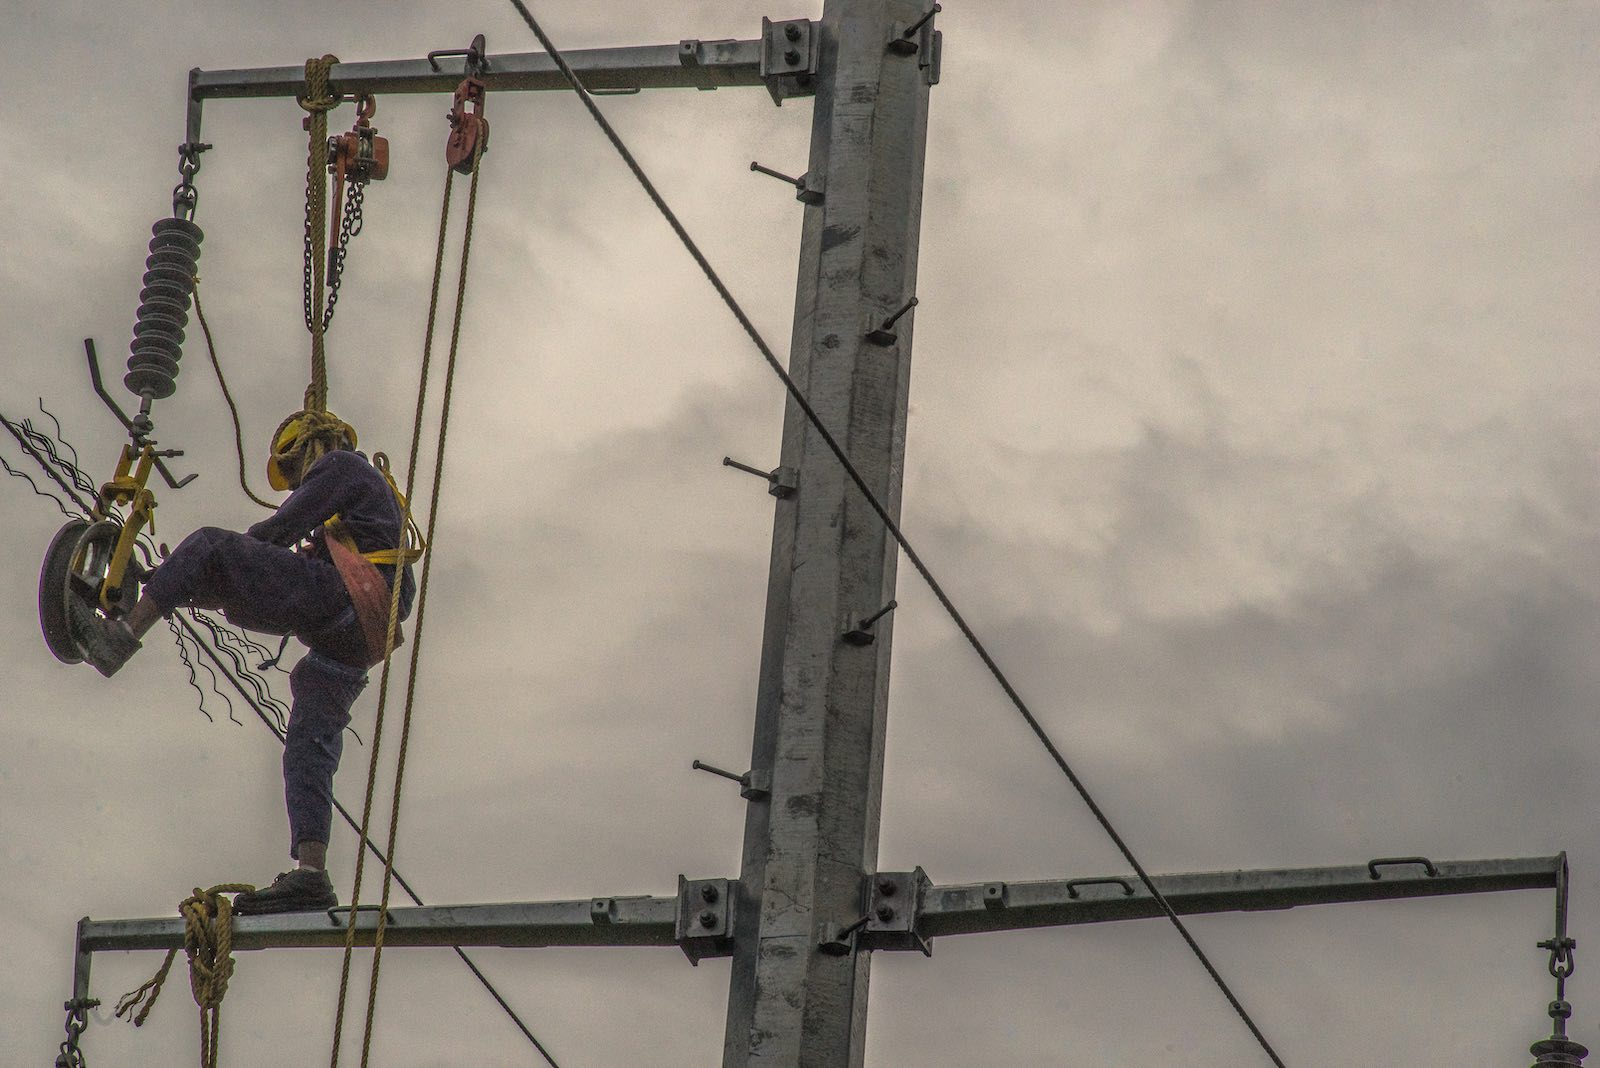 Transmission lines installation in Kimbe, West New Britain, Papua New Guinea (Photo: ADB/Flickr)